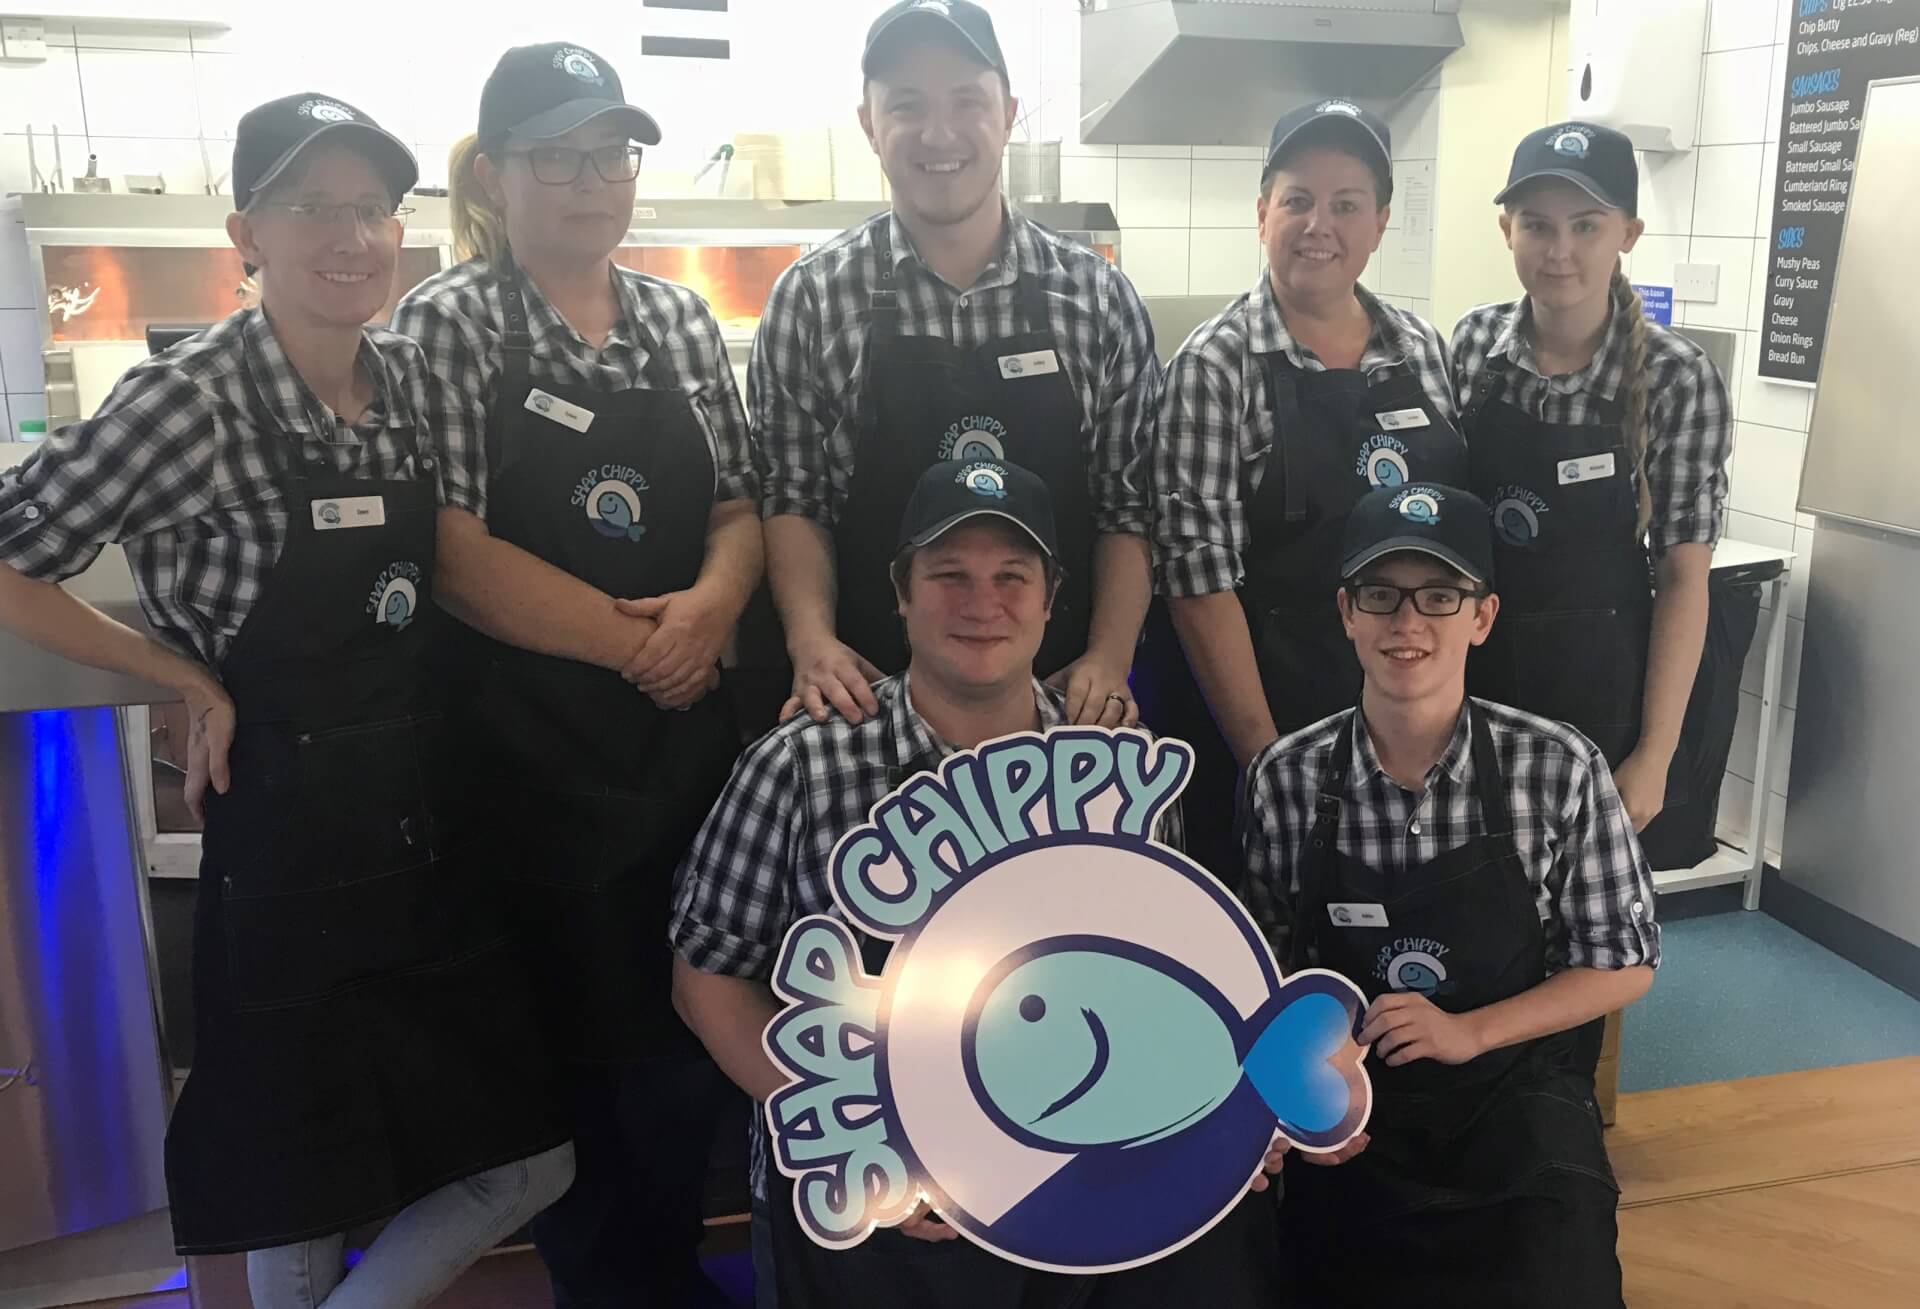 Shap Chippy Staff Uniforms: Group Photo